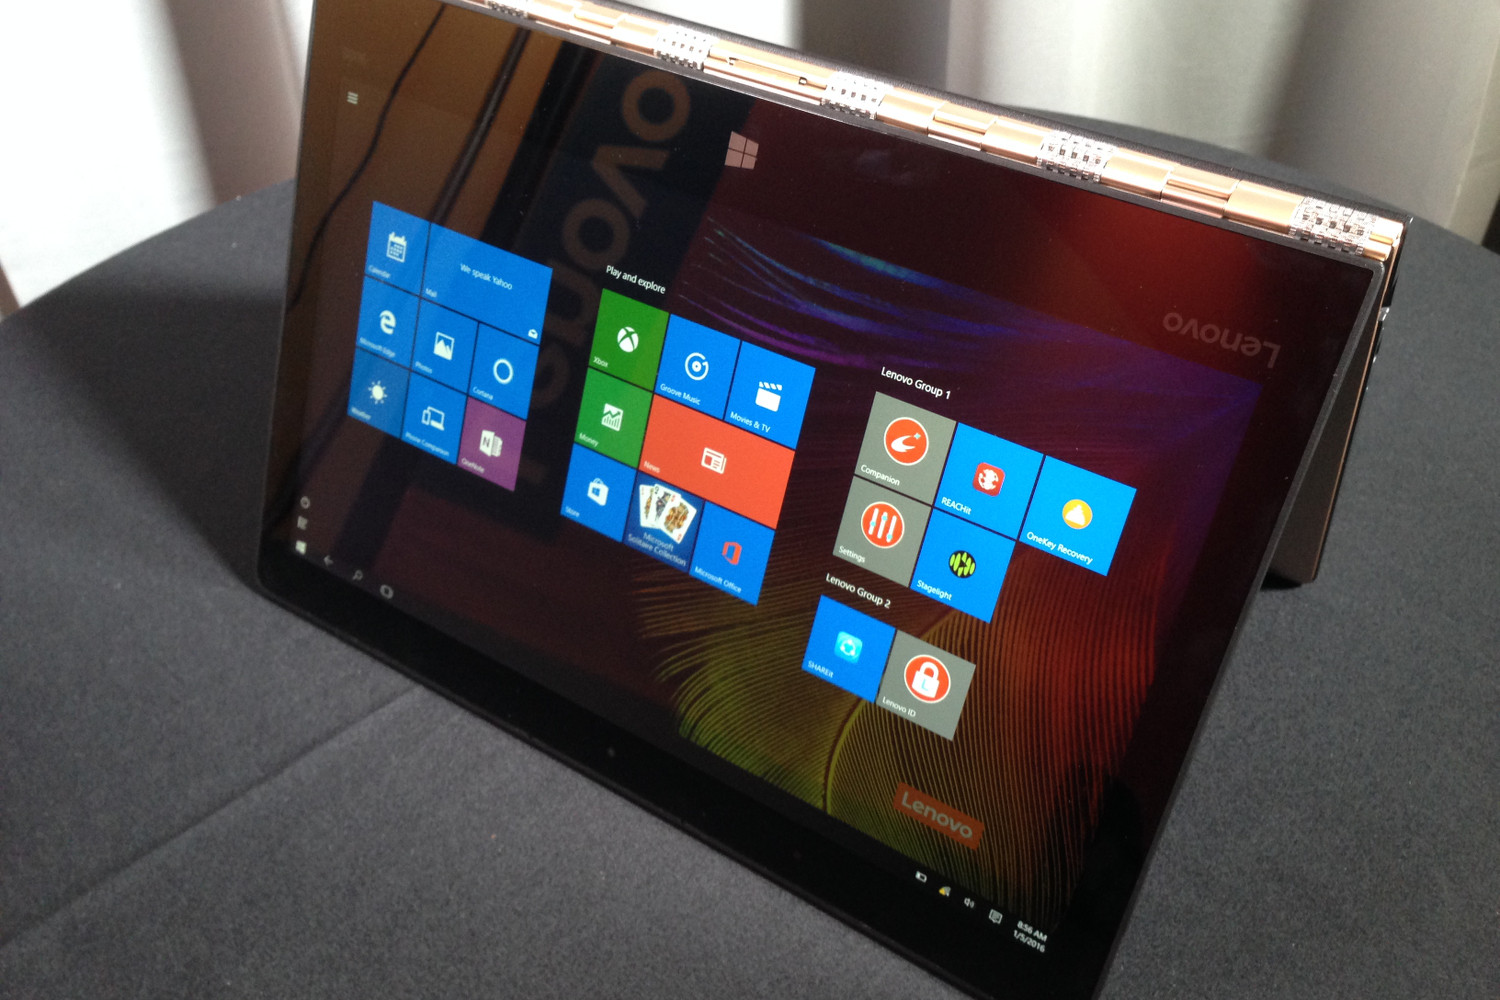 Lenovo confirms and denies locking Linux operating systems out of Yoga notebooks